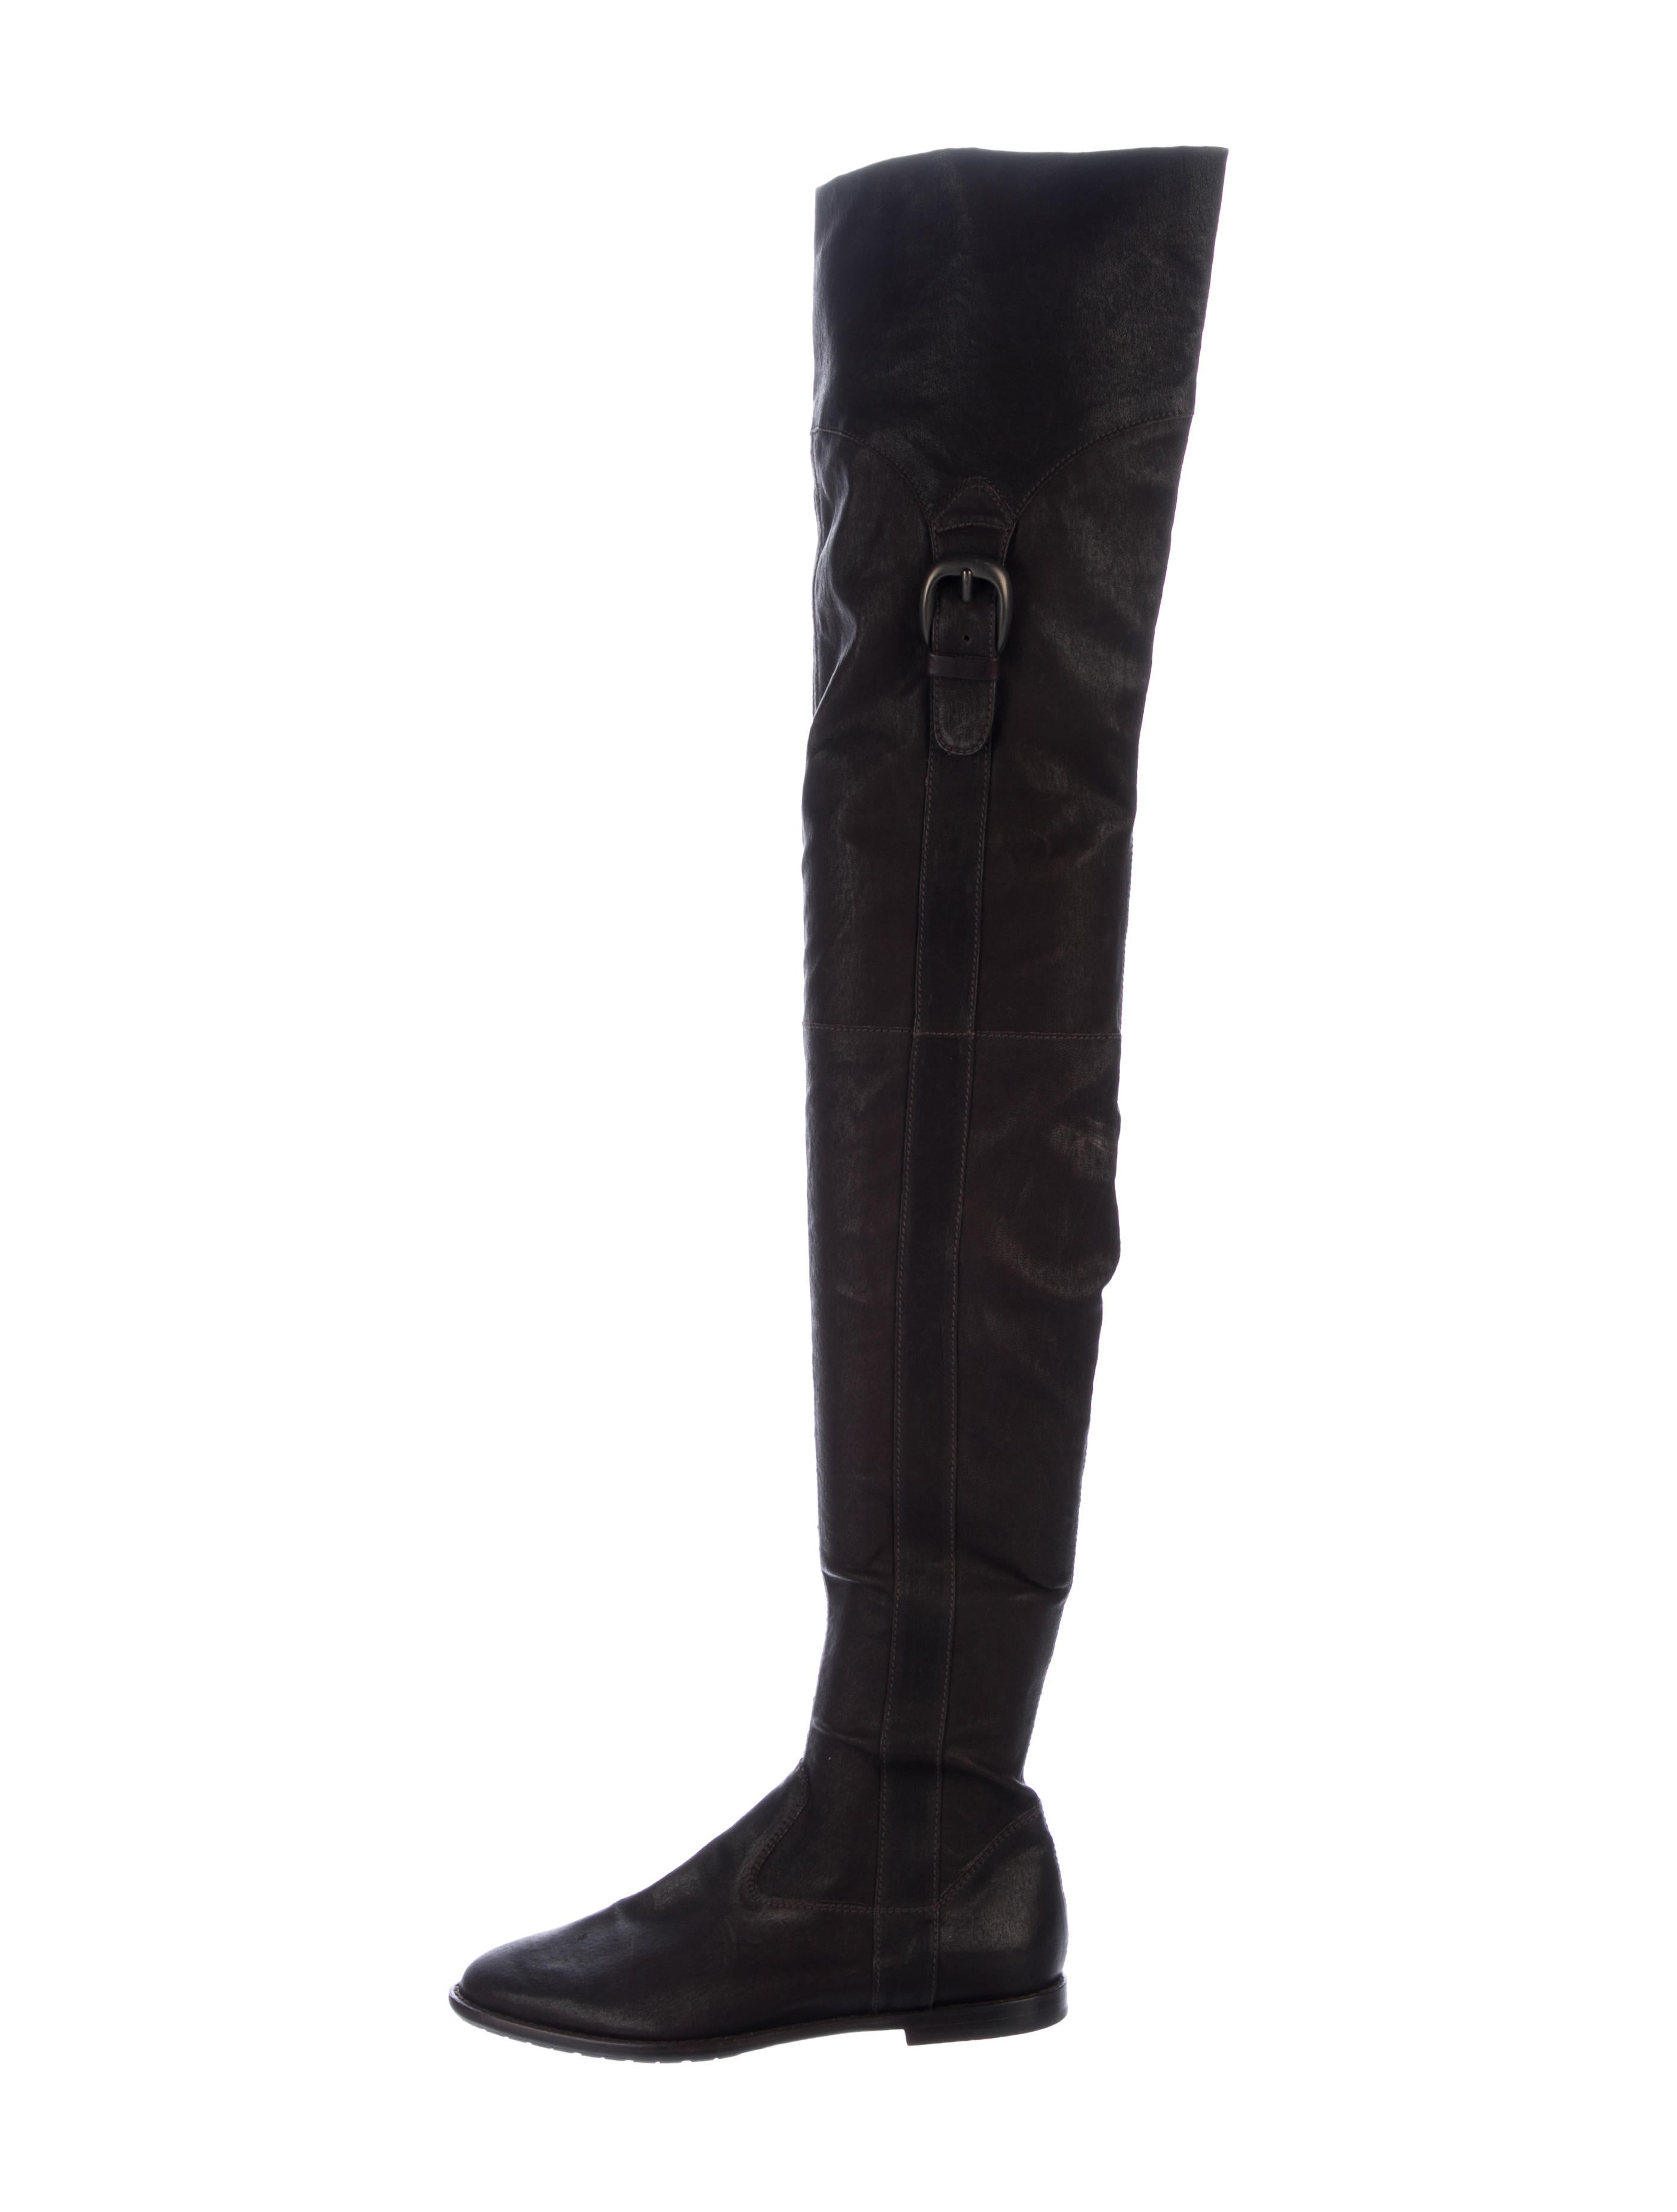 Henry Beguelin Leather Knee-High Boots w/ Tags 2014 newest online cheap sale eastbay 3hbwETQk